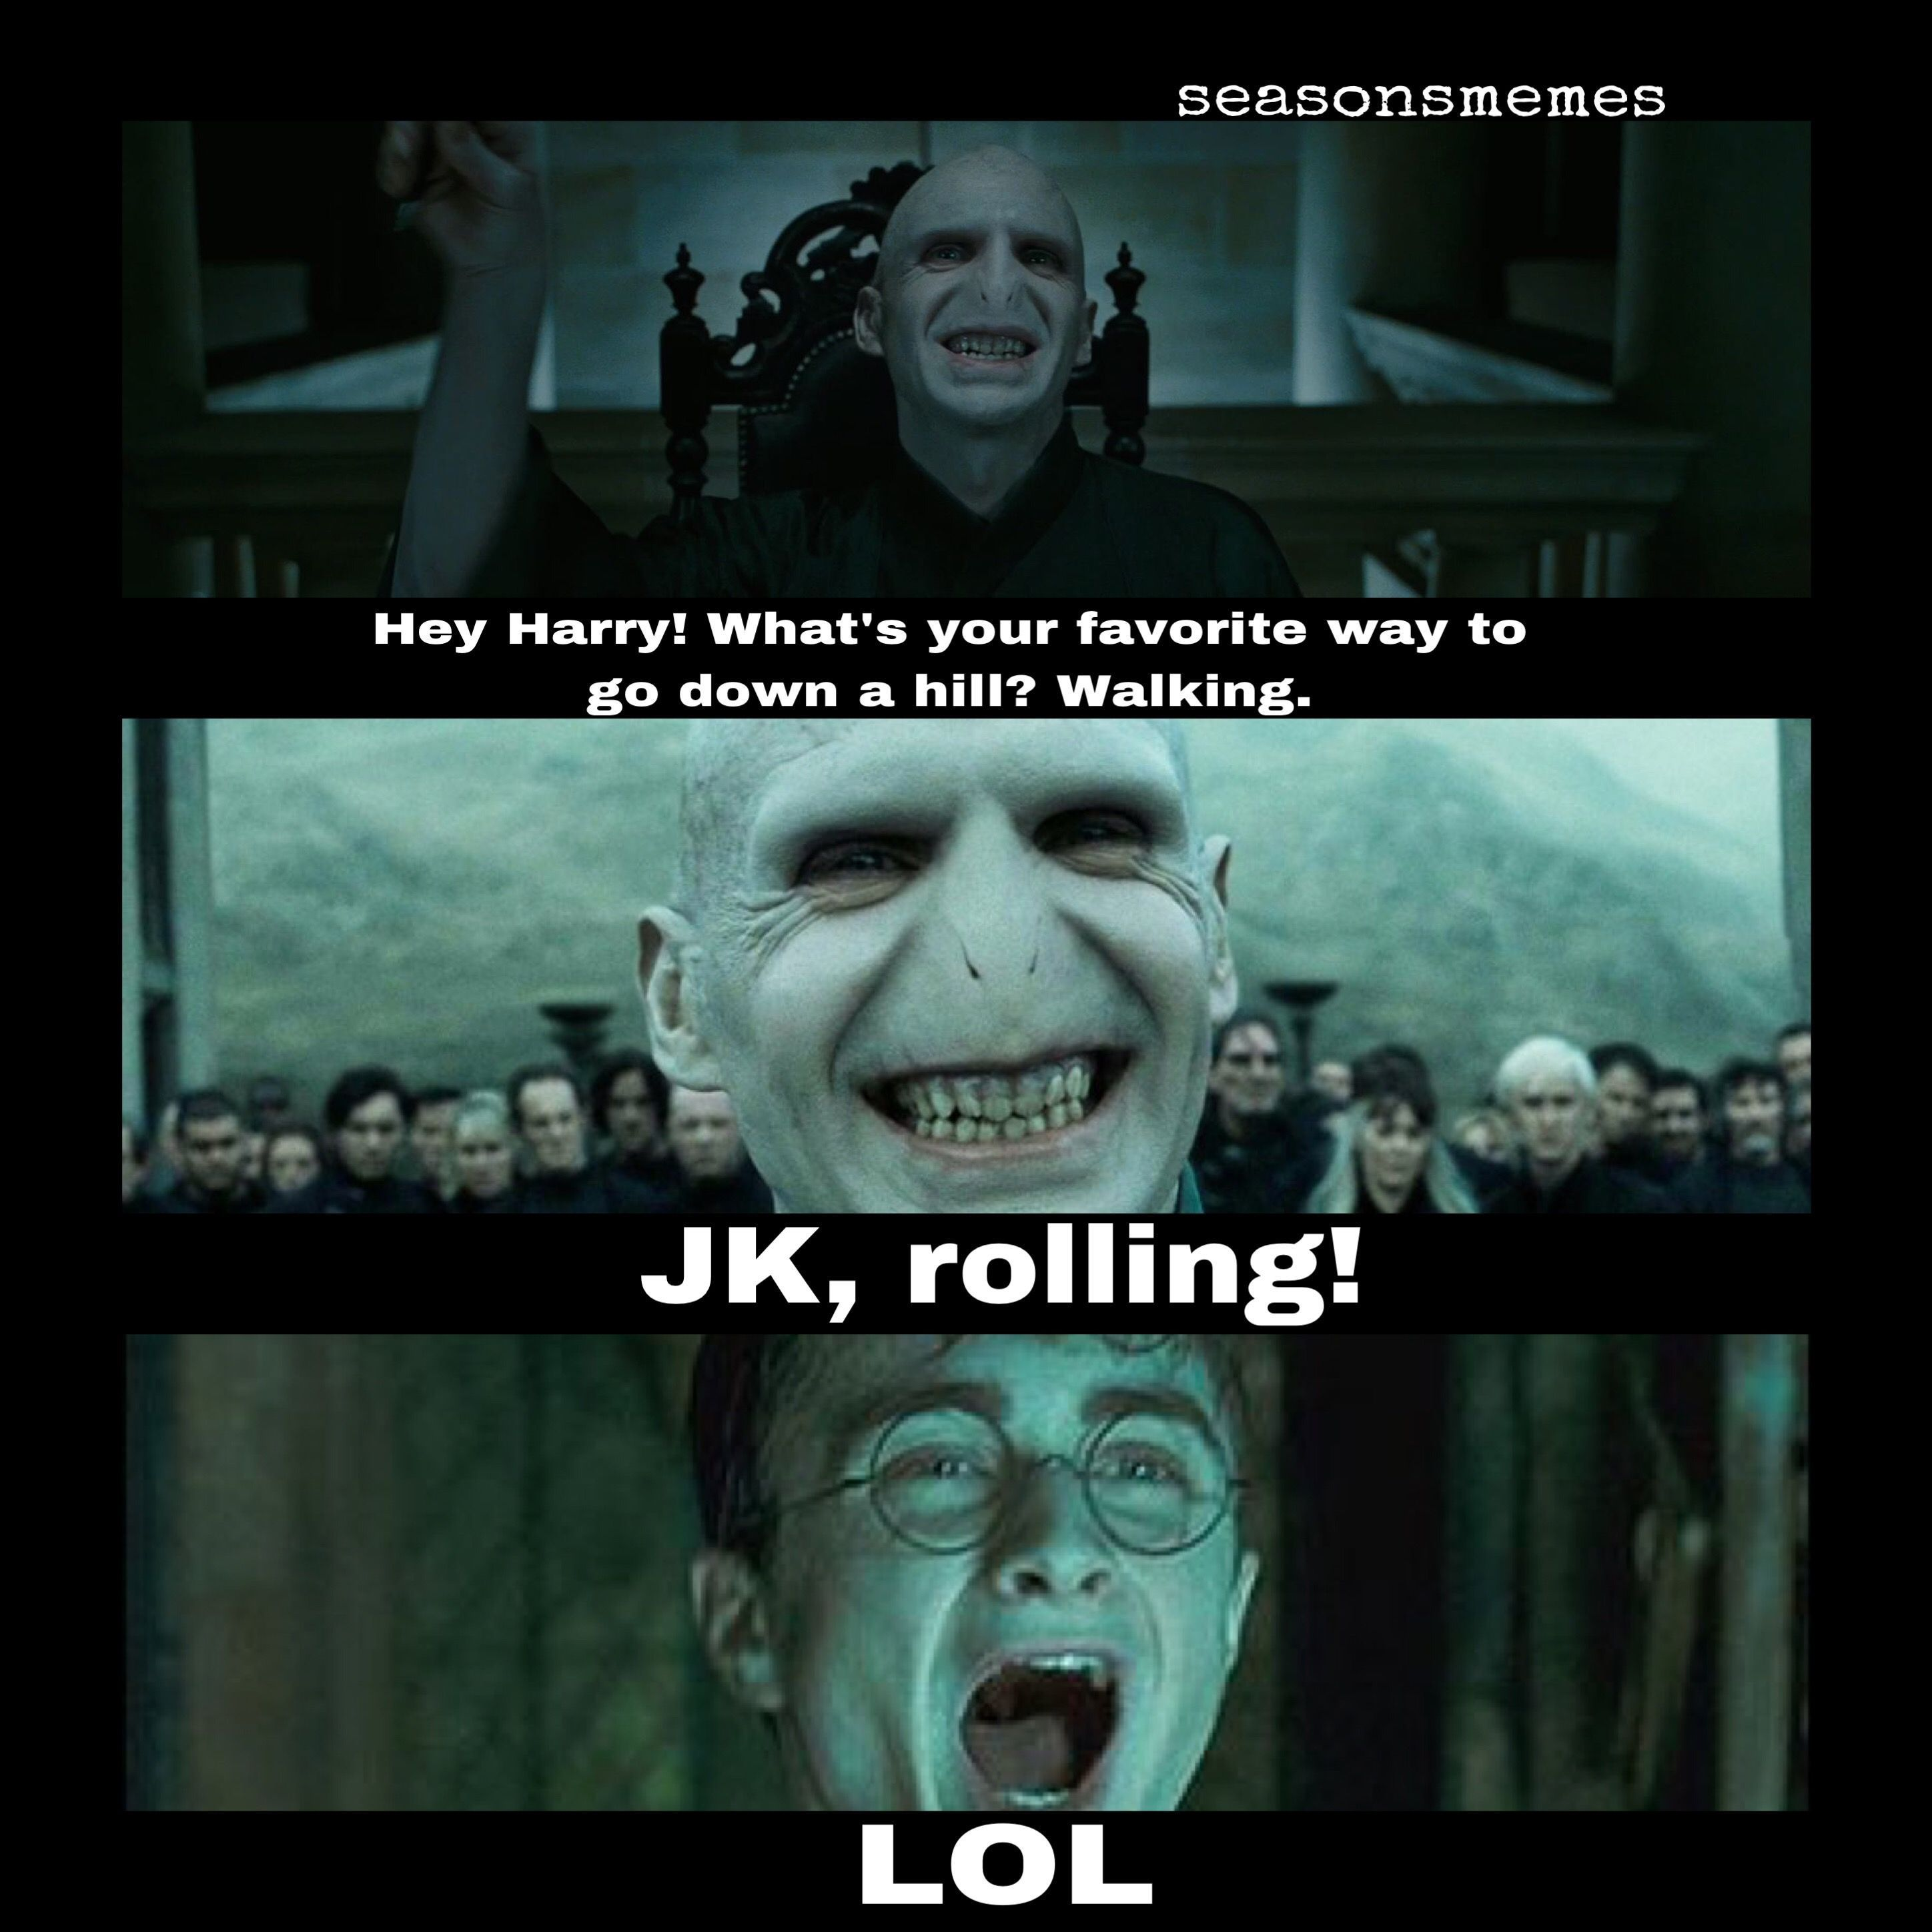 Potter Harry Only True Fans Will This Getonly True Harry Potter Fans Will Get This 3 Harry Harry Potter Cast Harry Potter Universal Harry Potter Jokes